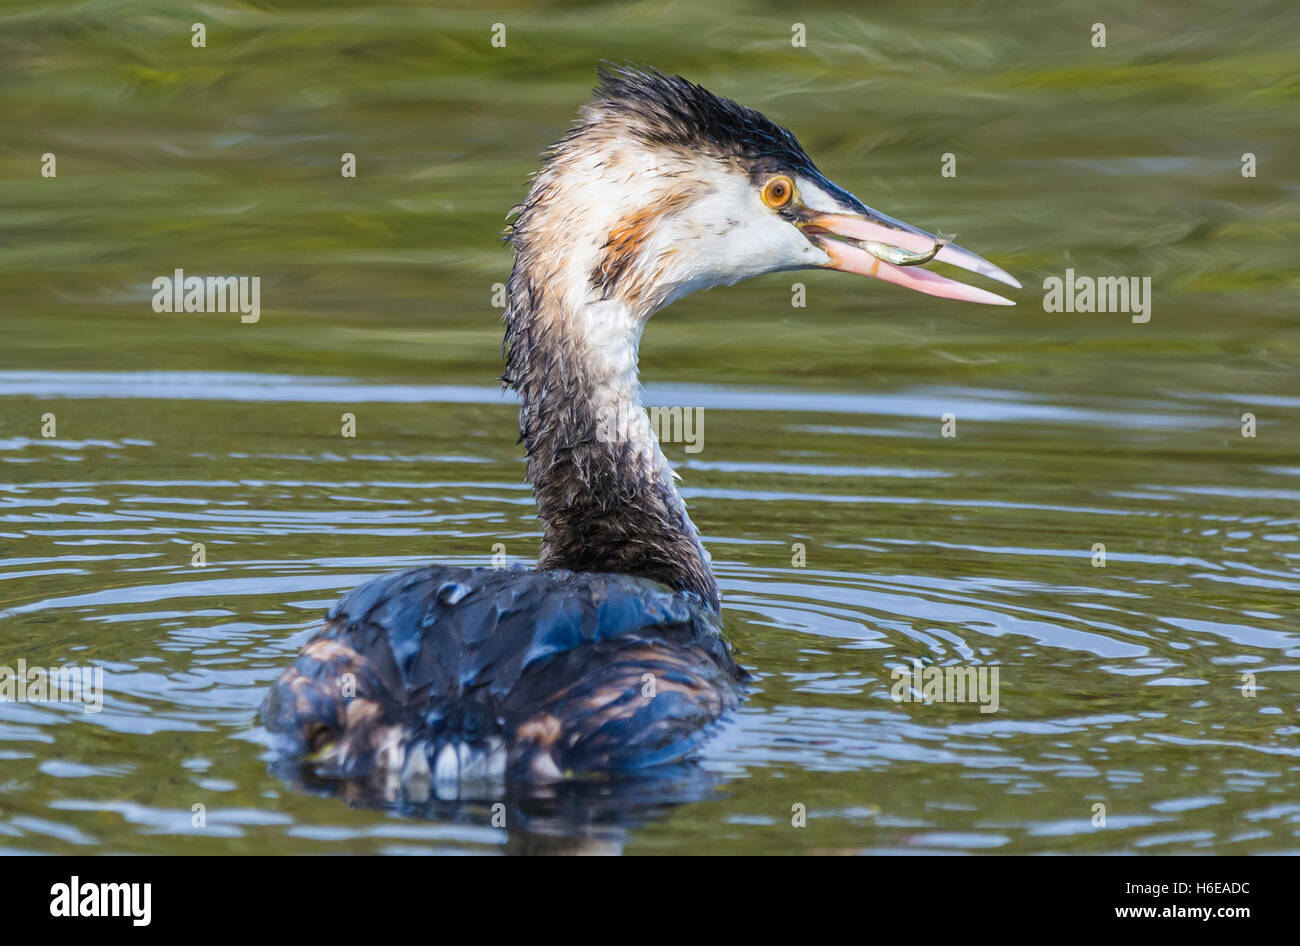 Great crested grebe (Podiceps cristatus) in non-breeding plumage with a fish on it's mouth, swimming in water - Stock Image